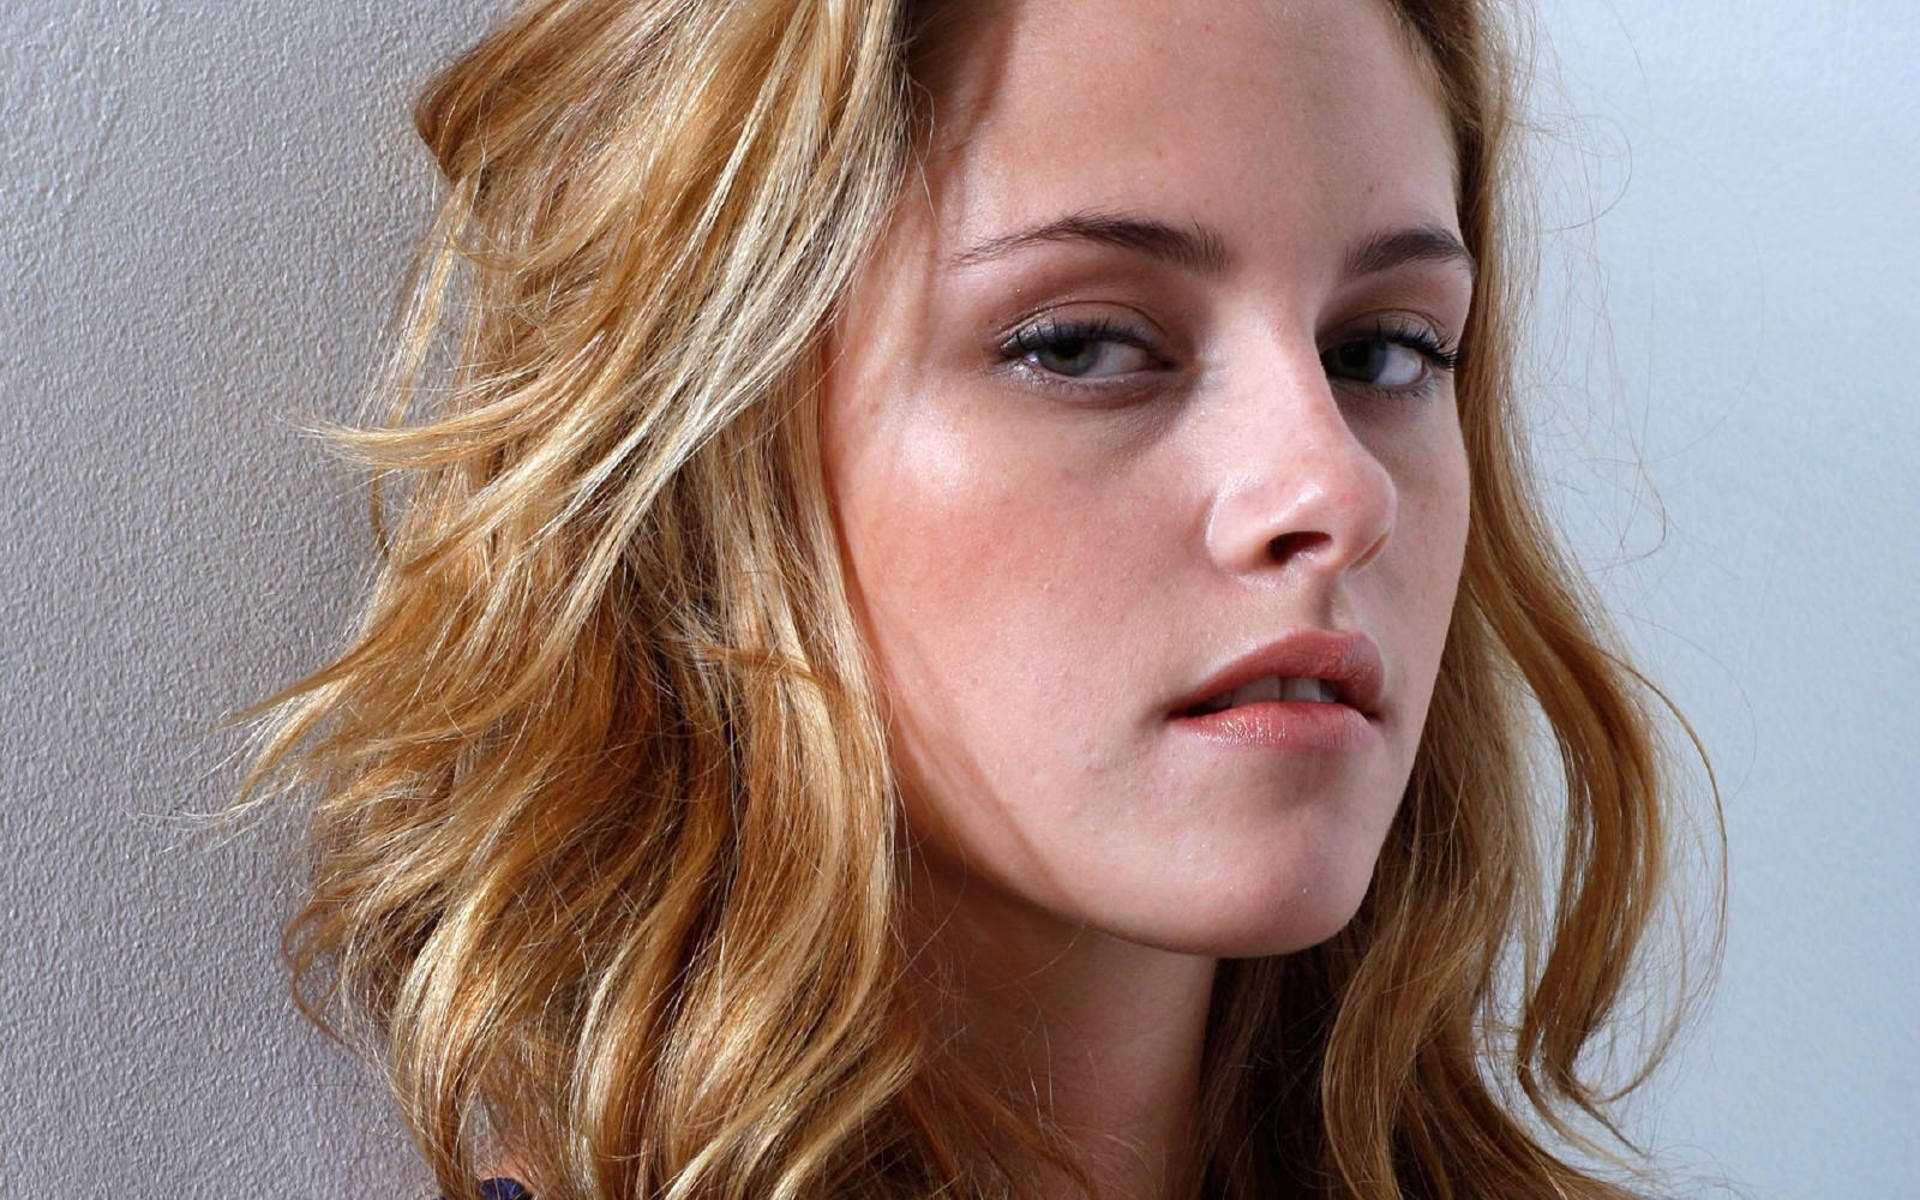 Wallpaper Kristen Stewart portrait regard intense Cinema Video